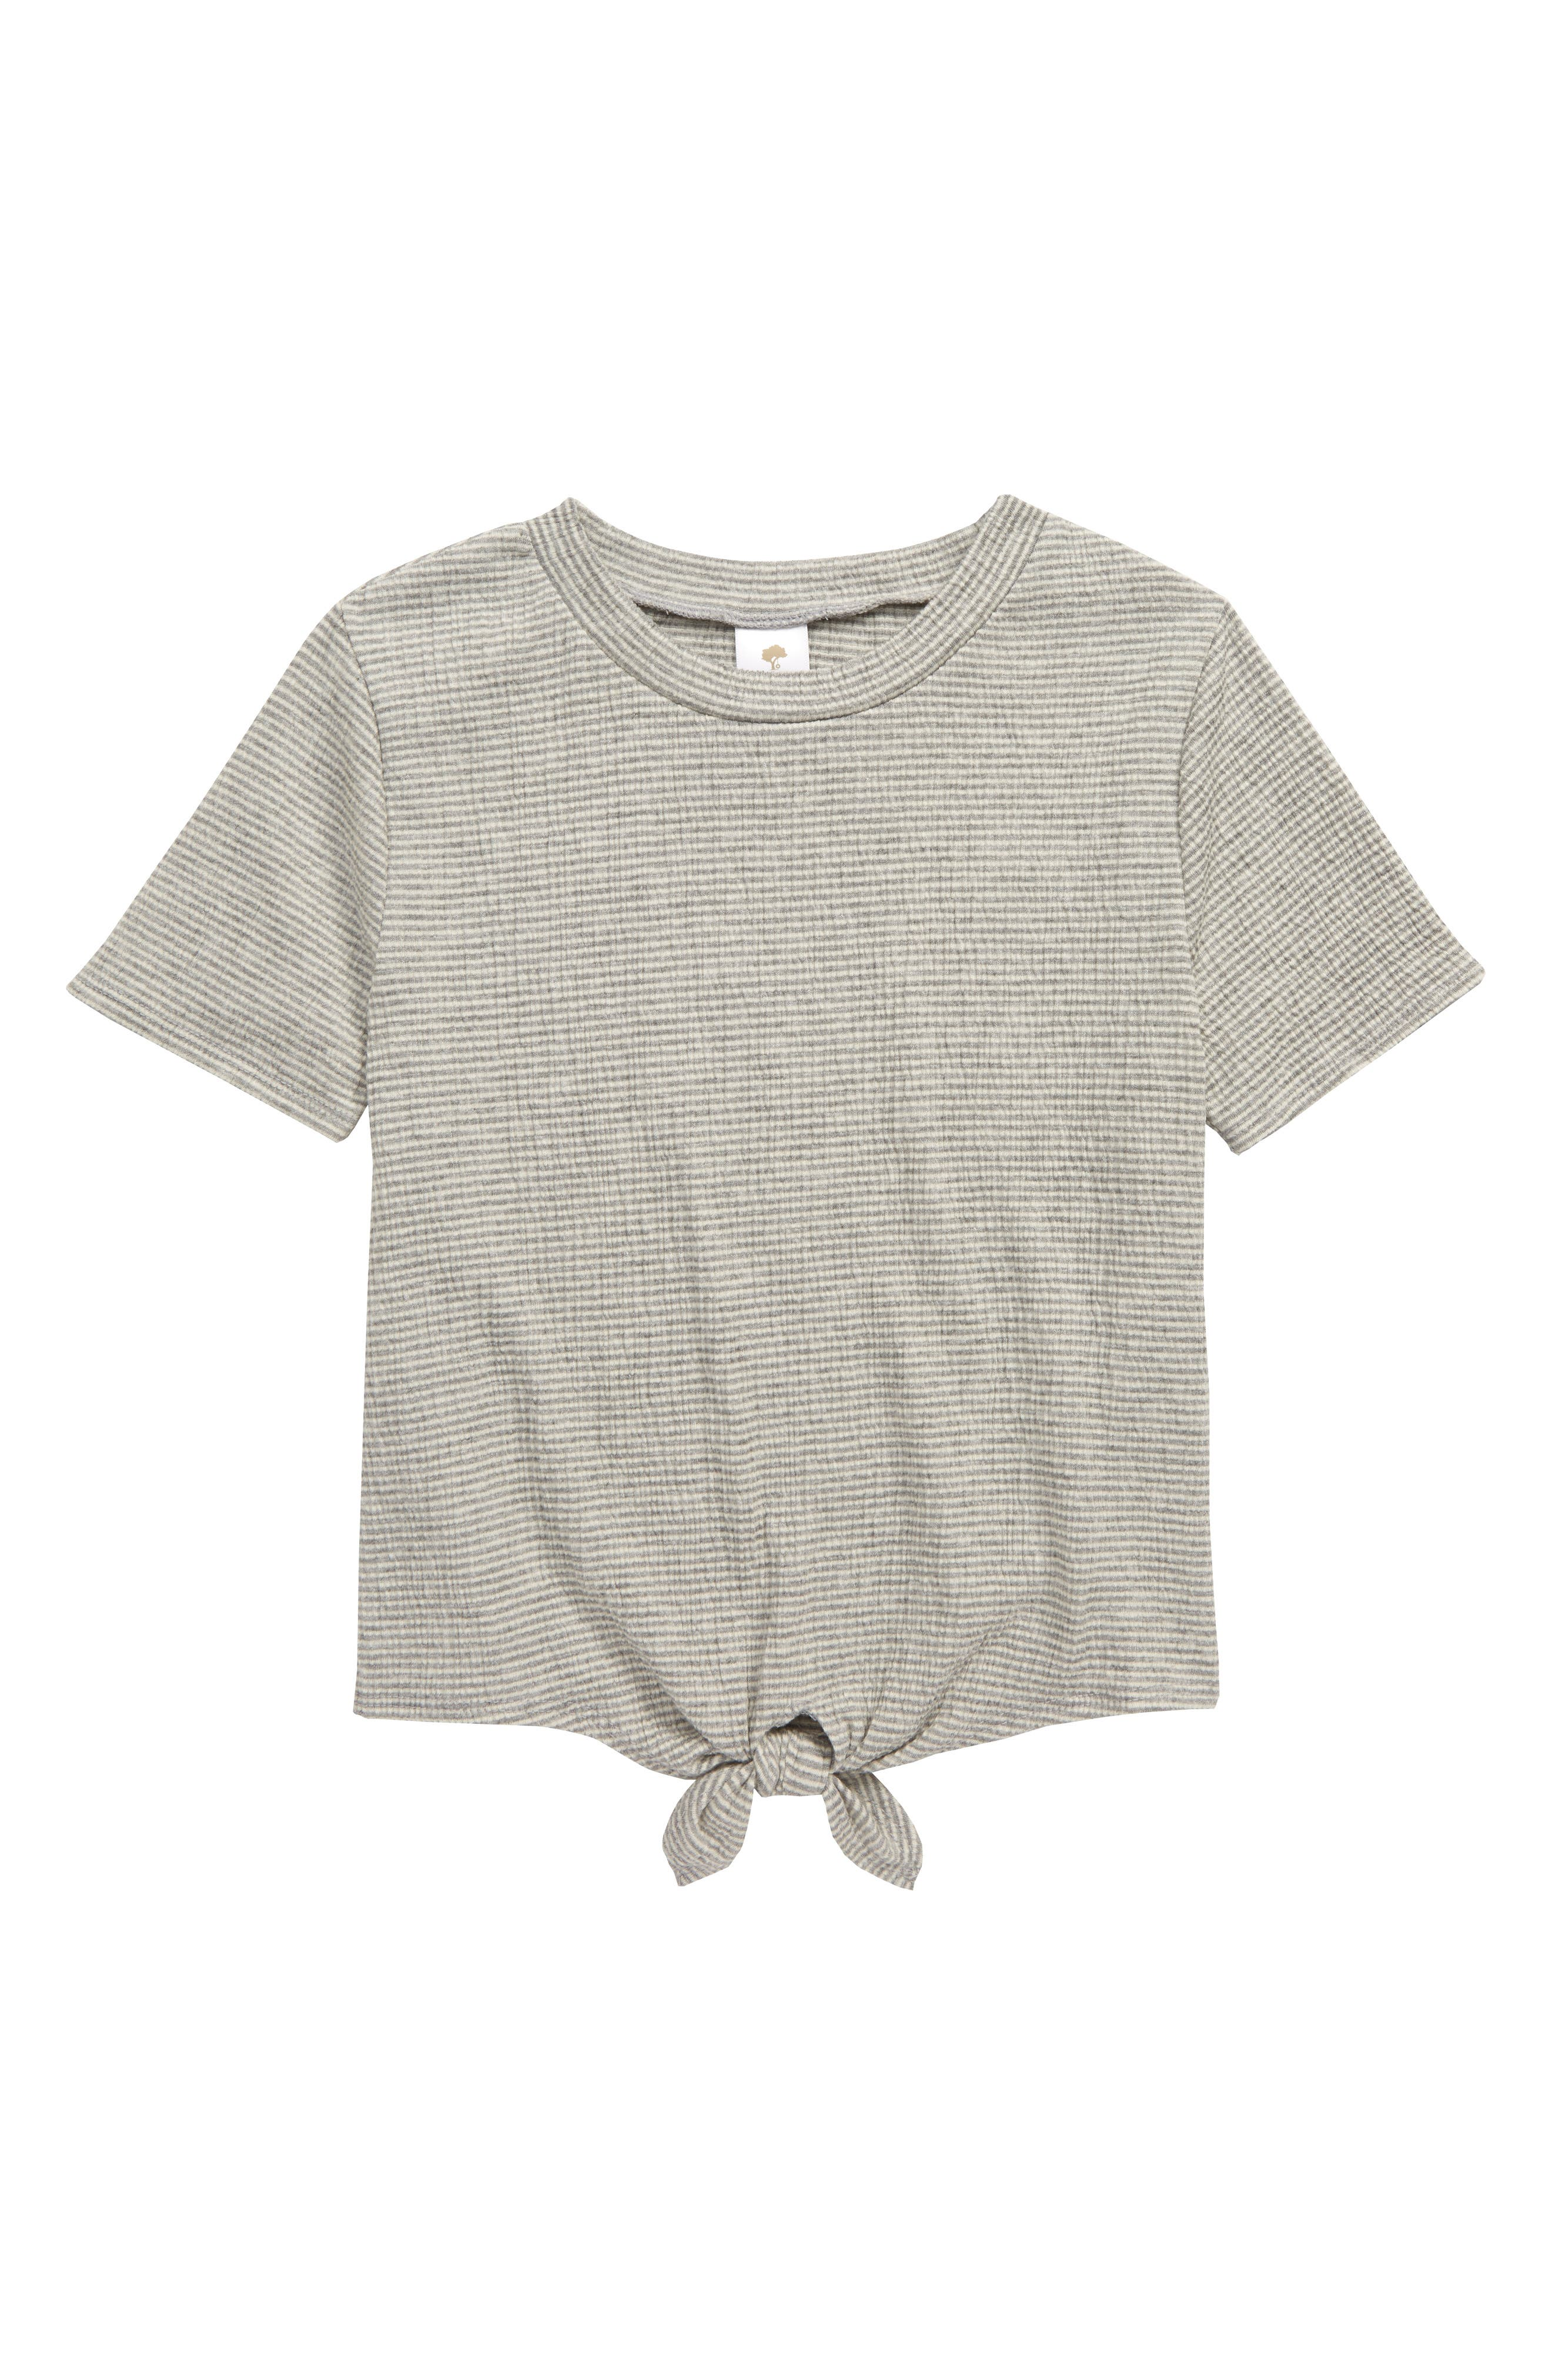 A knotted hem adds understated casual charm to this essential crewneck tee in a textured knit. Style Name: Tucker + Tate Knot Hem T-Shirt (Big Girl). Style Number: 6041810. Available in stores.